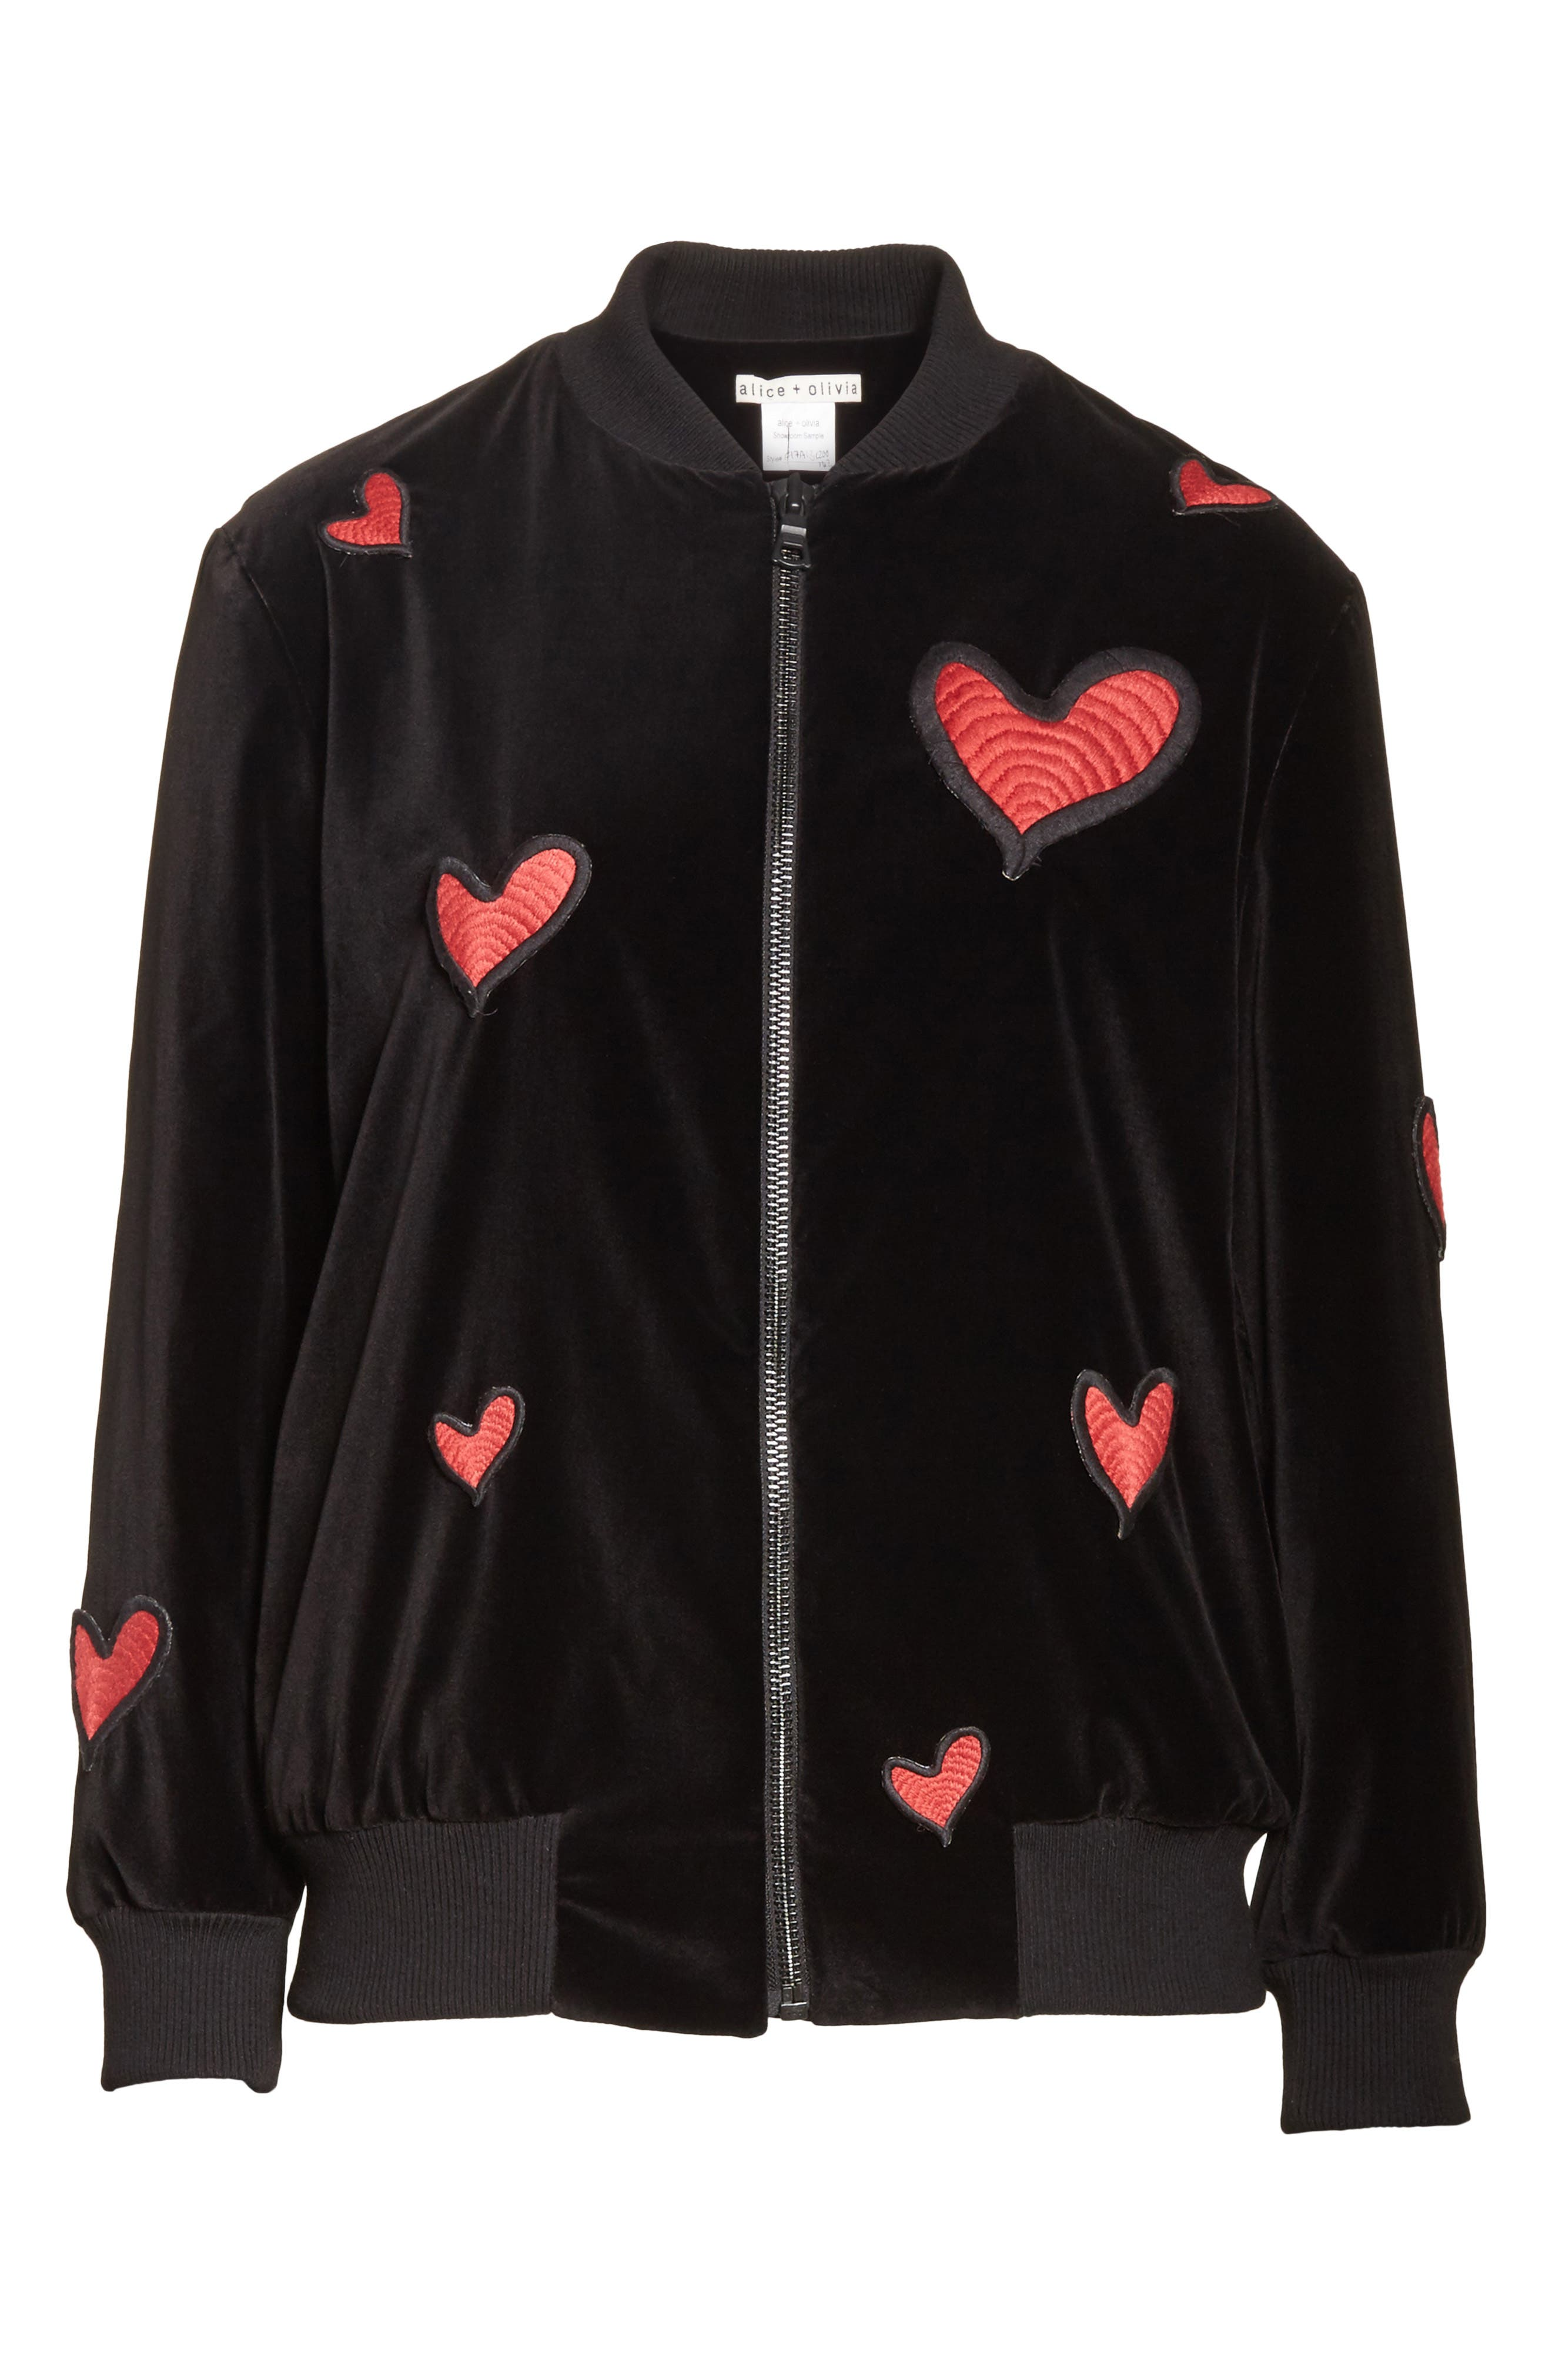 Embroidered Patch Oversize Bomber Jacket,                             Alternate thumbnail 6, color,                             Black Red